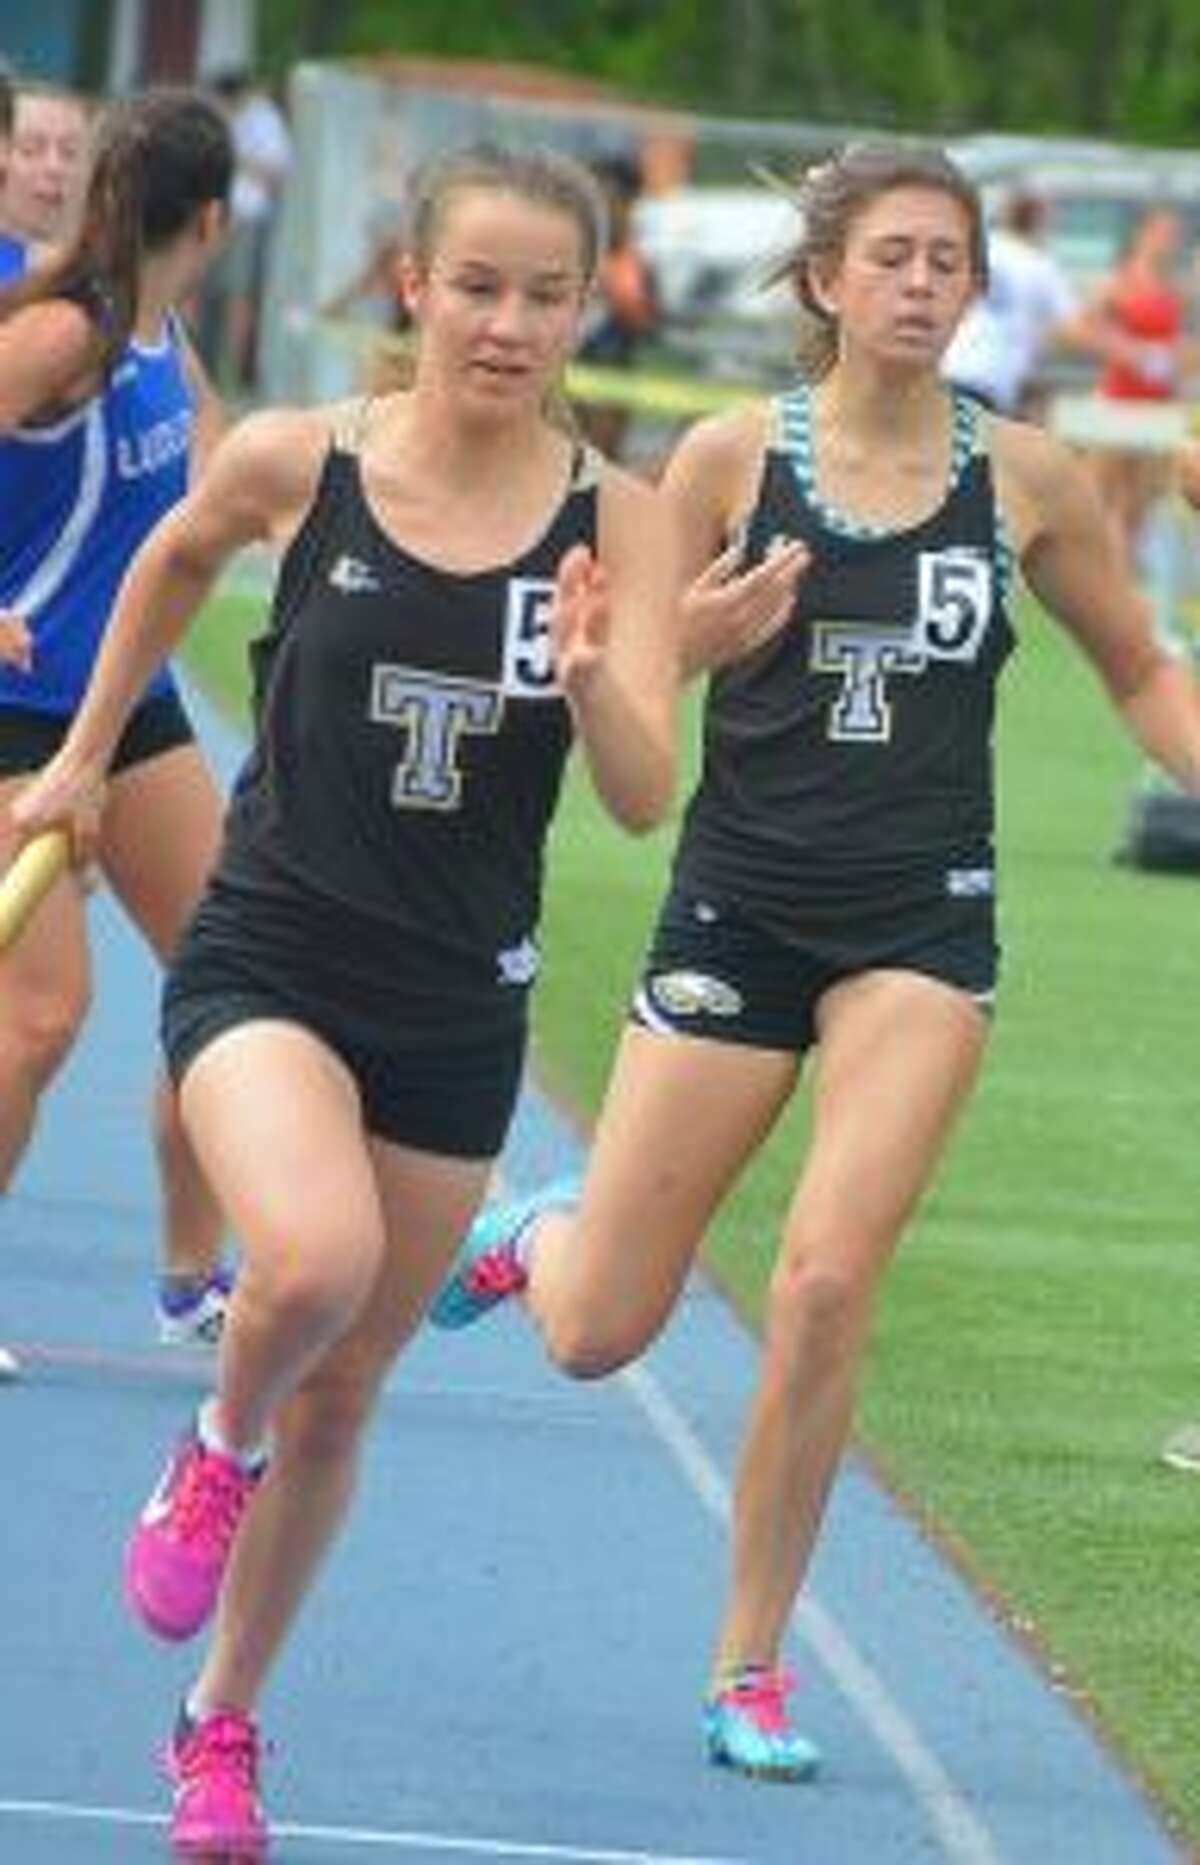 Kate Romanchick takes baton from Ashley Storino for the final leg of the 4x800 meter relay at the FCIAC championships.